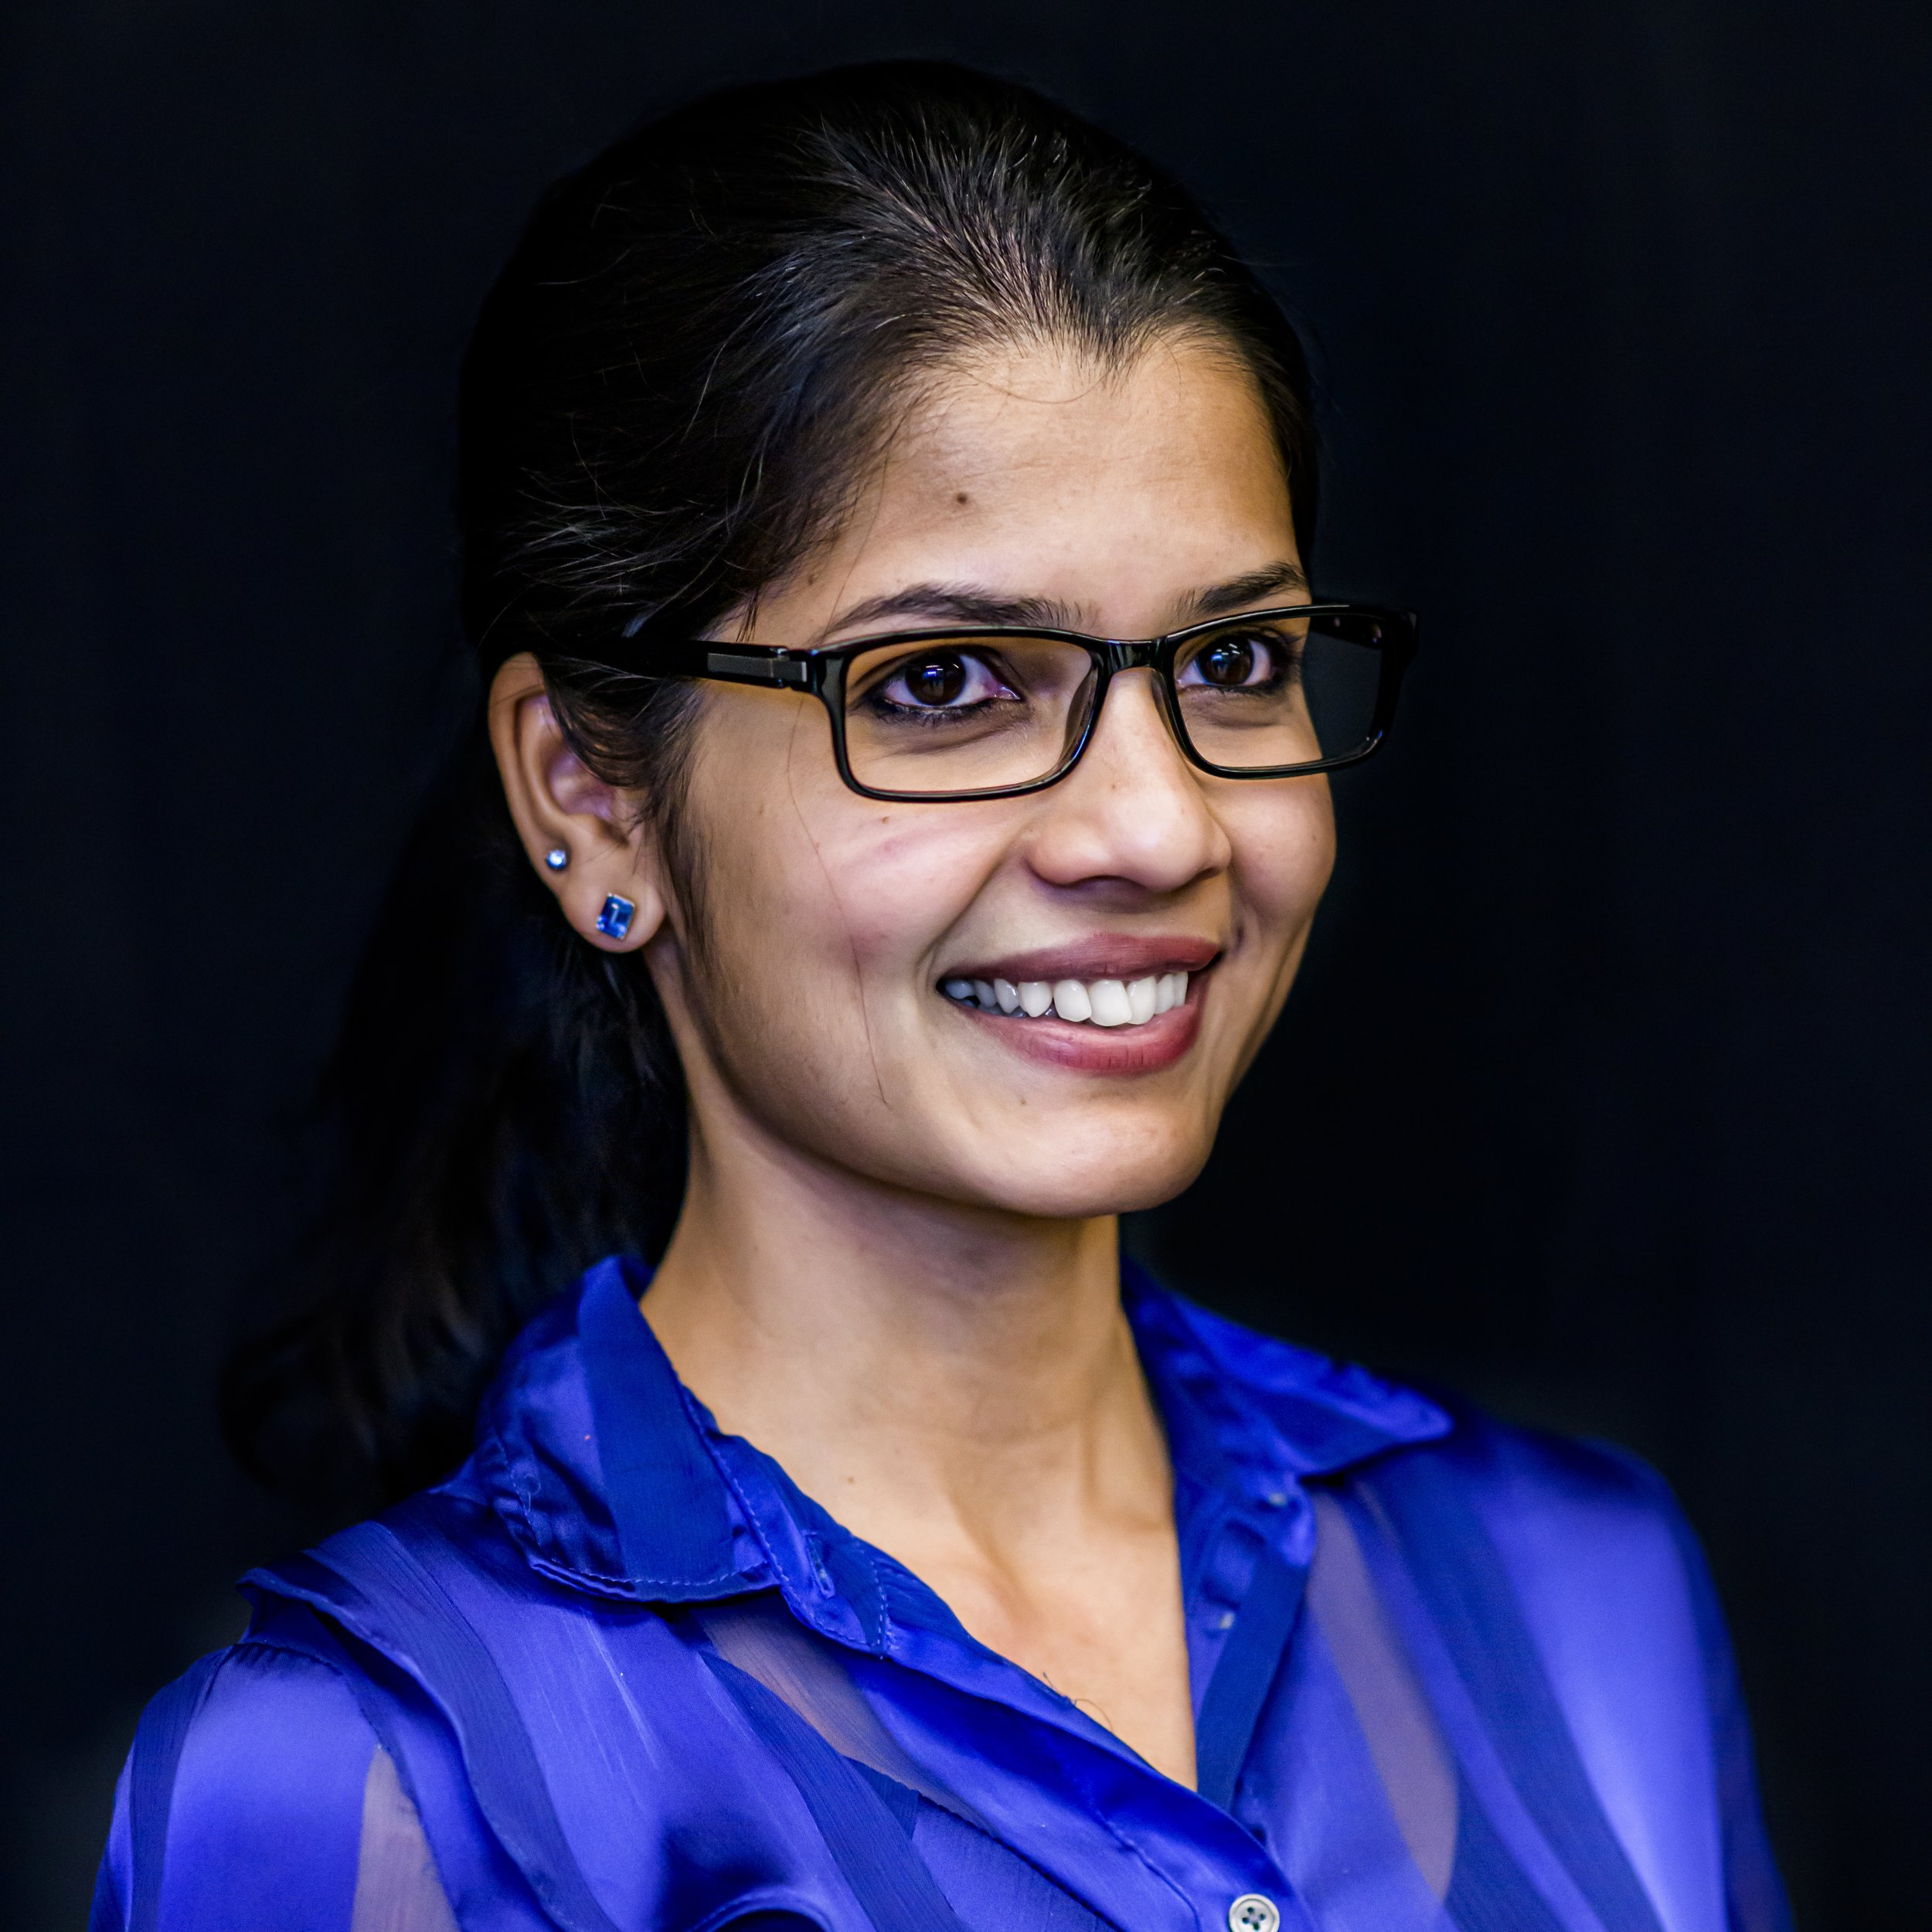 Receptionist - Queen of the lobby in a Wipro office in Bangalore.Played by Sunanda Mukundan.